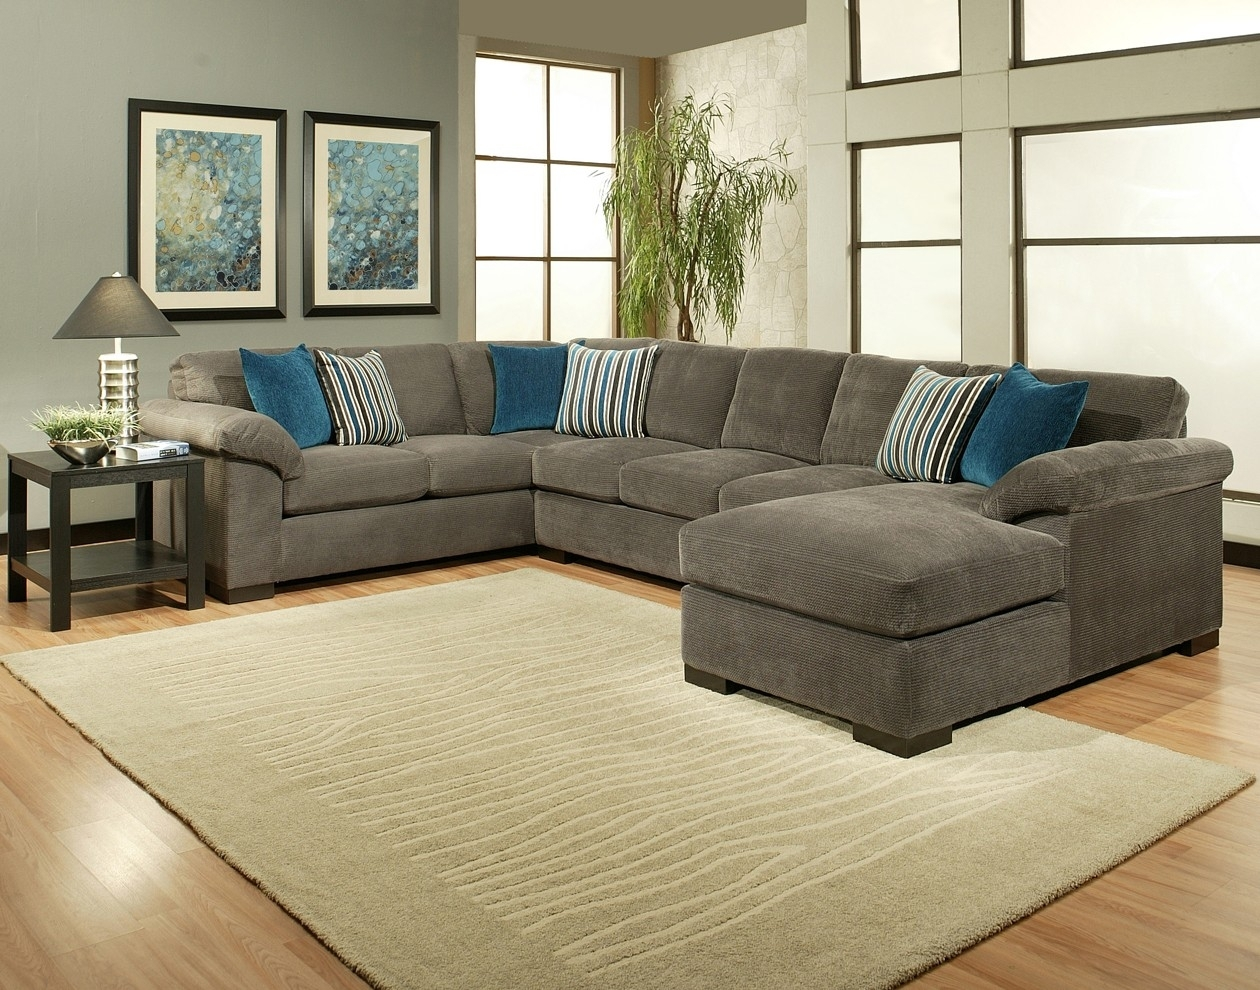 Comfort Industries 3 Pc Fire Fly Sectional Sofa In Sierra Down 3 Piece Sectionals With Laf Chaise (View 12 of 25)